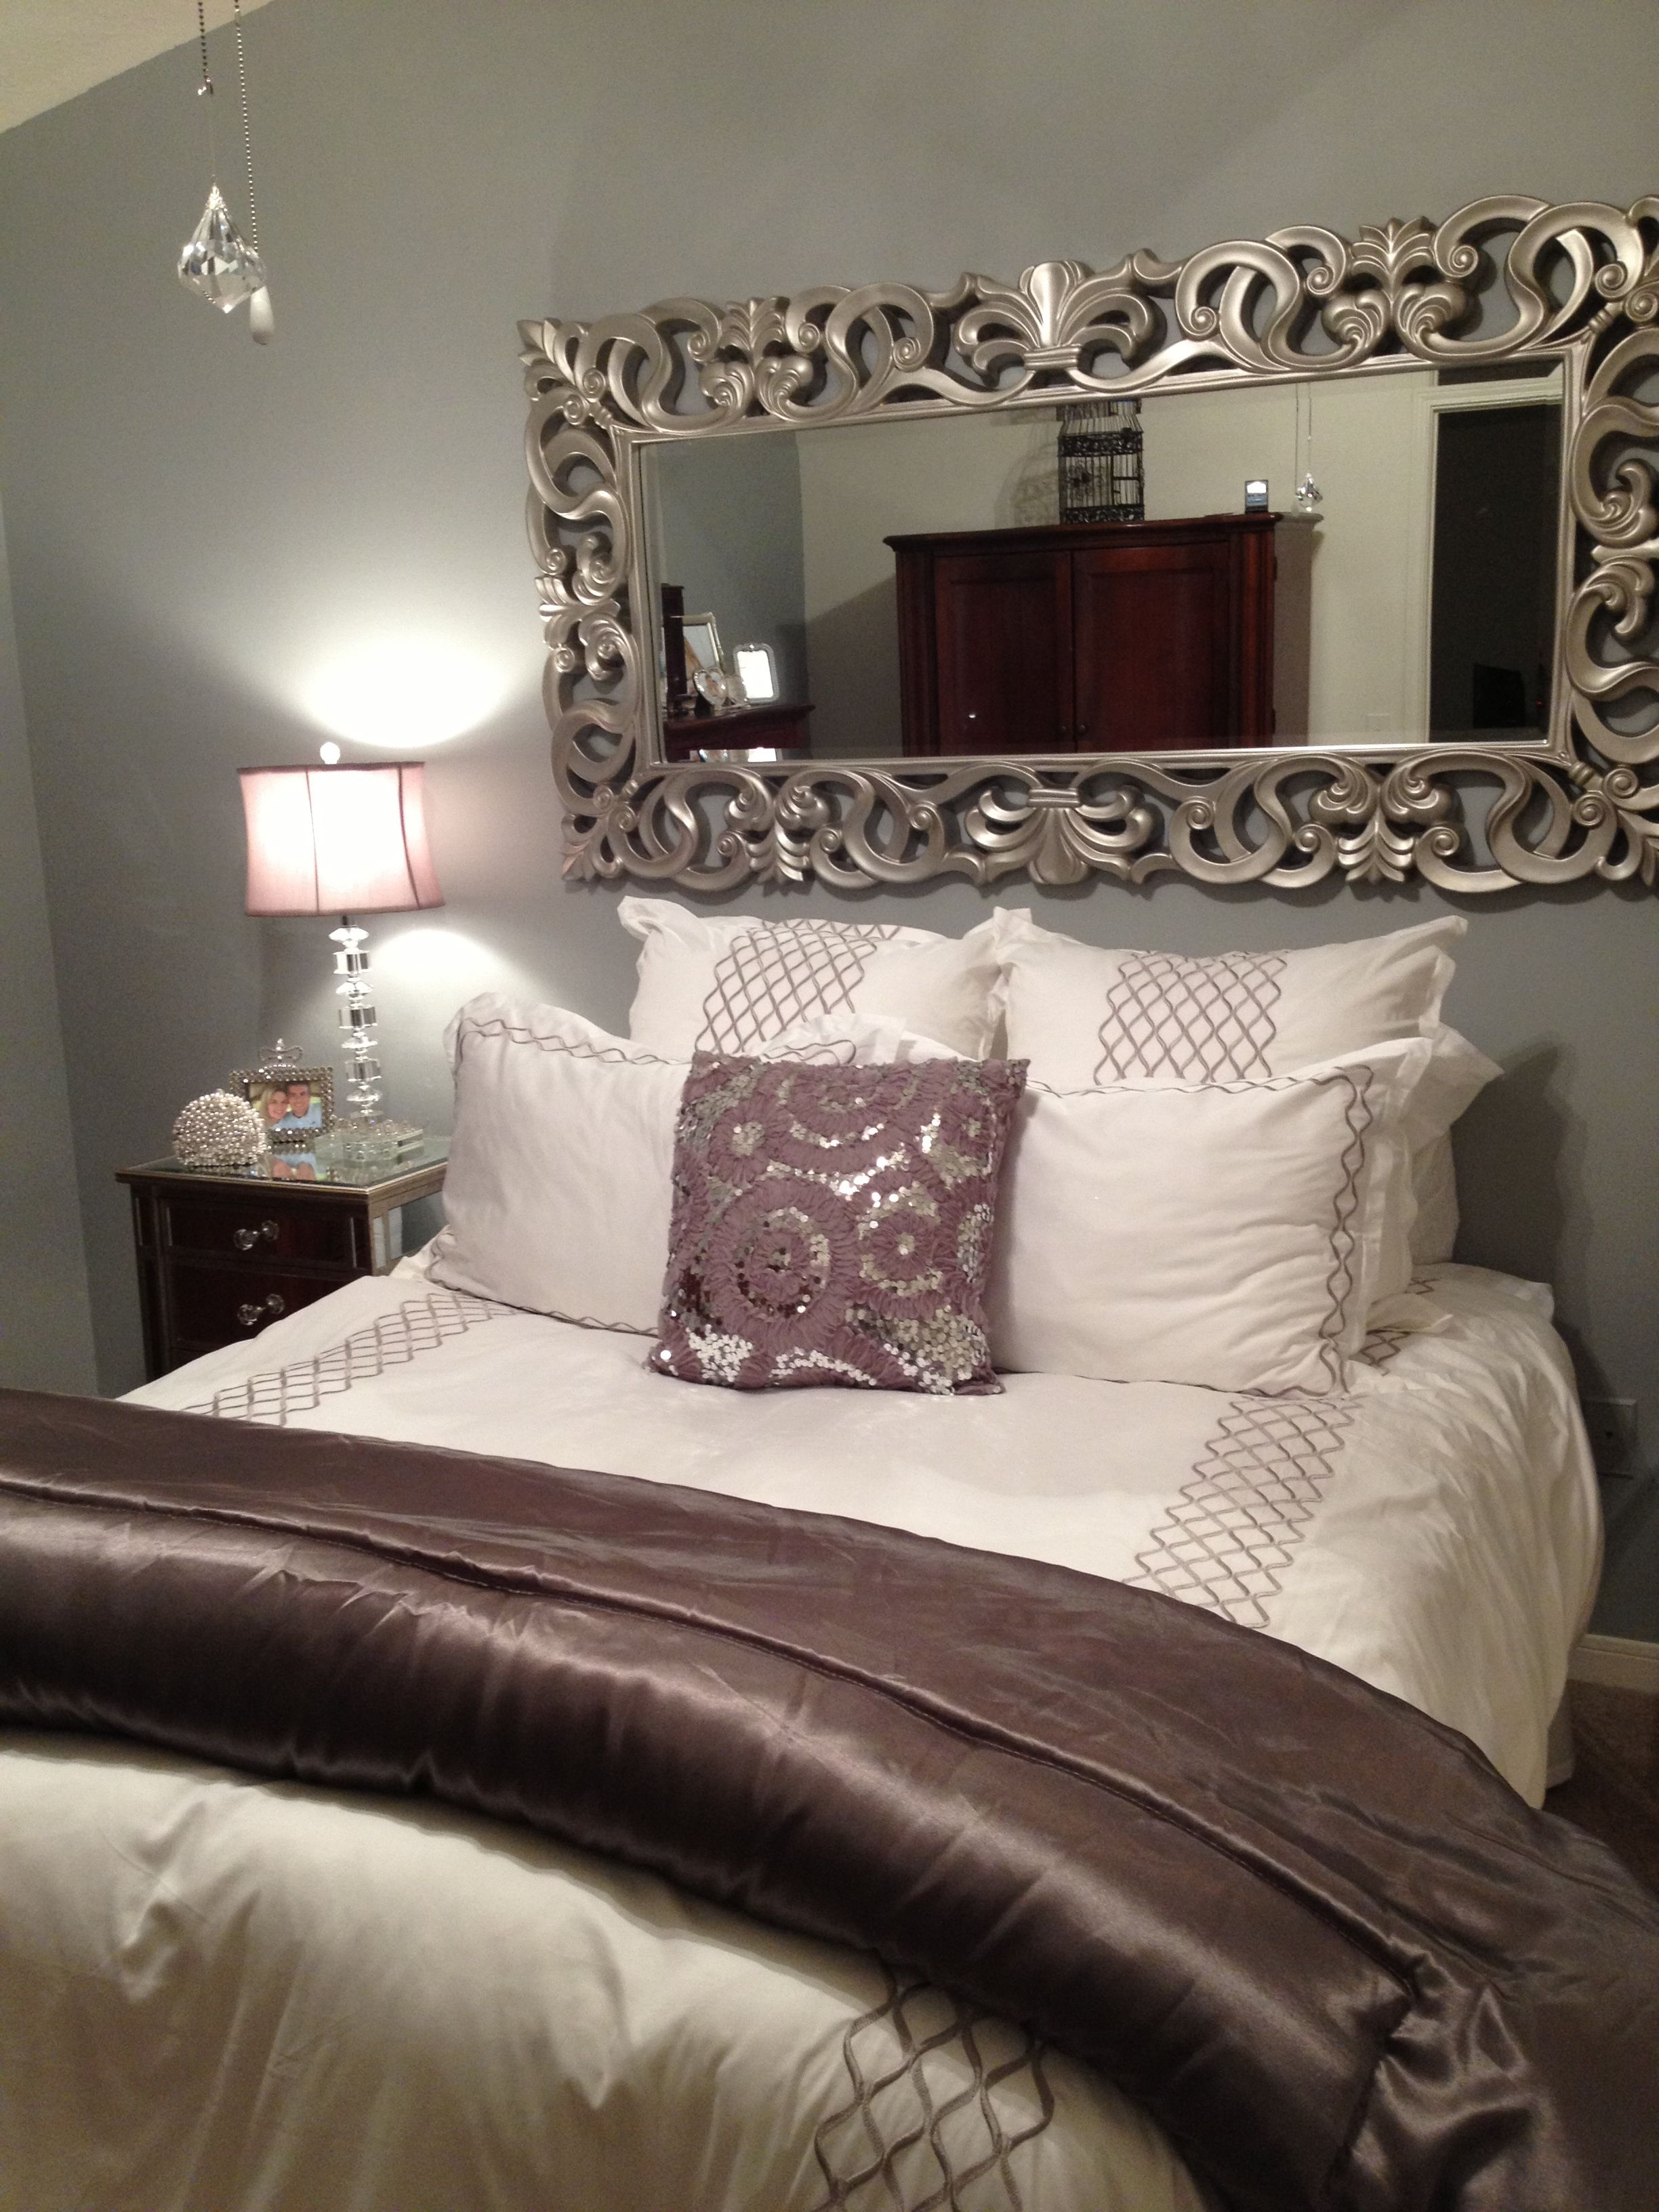 Home Decor Bedroom Decor Nice Use Of The Mirror To Take Away